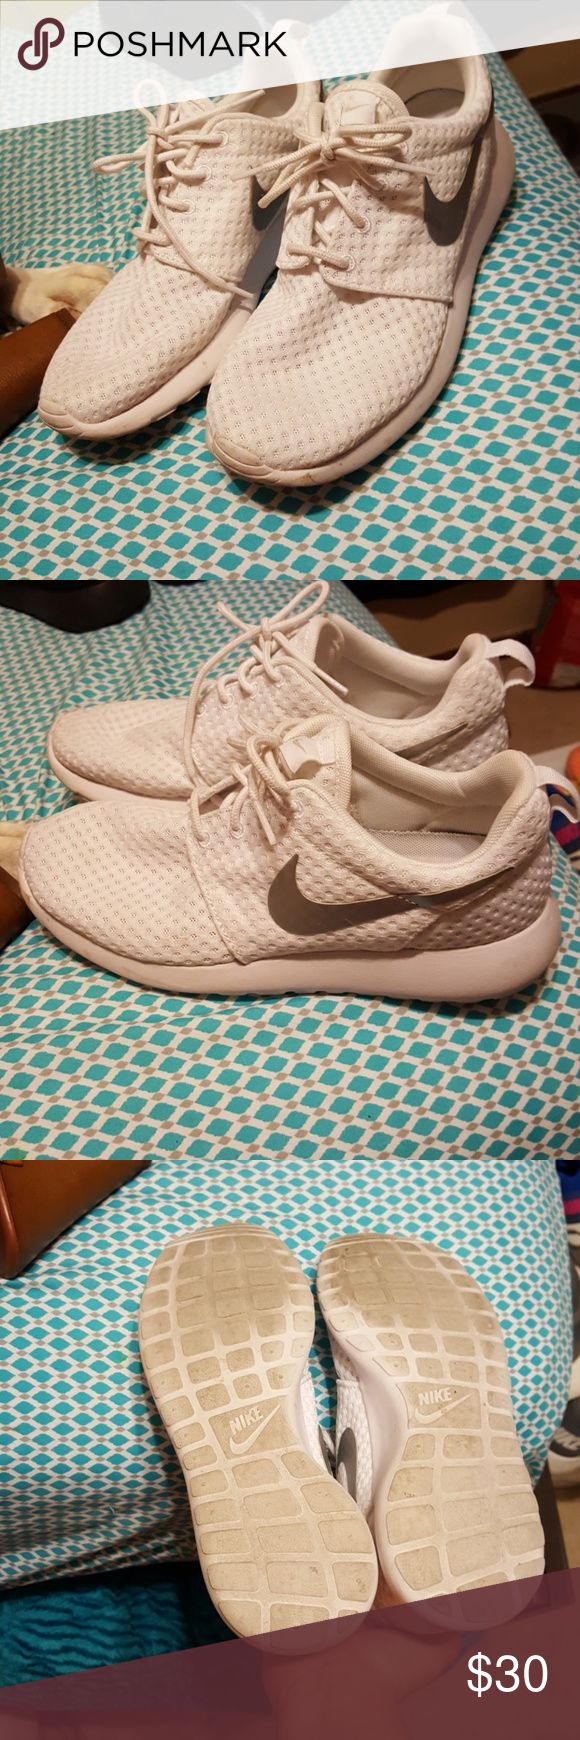 White Nike All white nike, grey swish, size 7.5 perfect condition. Worn a few times but dirt is only on the bottoms. Offers welcome. Nike Shoes Athletic Shoes